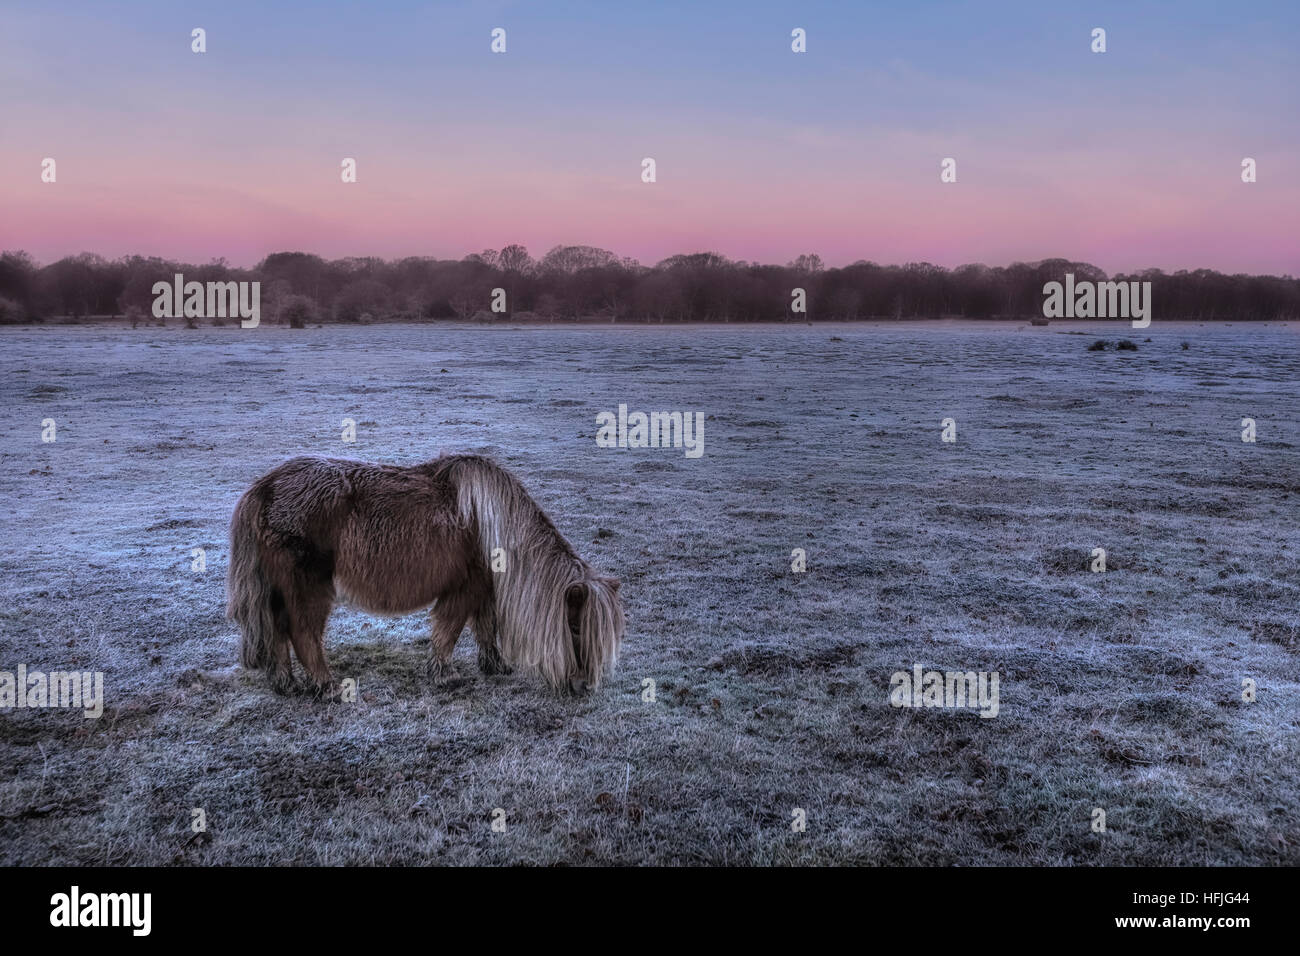 Balmer Lawn with wild roaming pony in sunrise, Brockenhurst, New Forest, Hampshire, England, UK - Stock Image